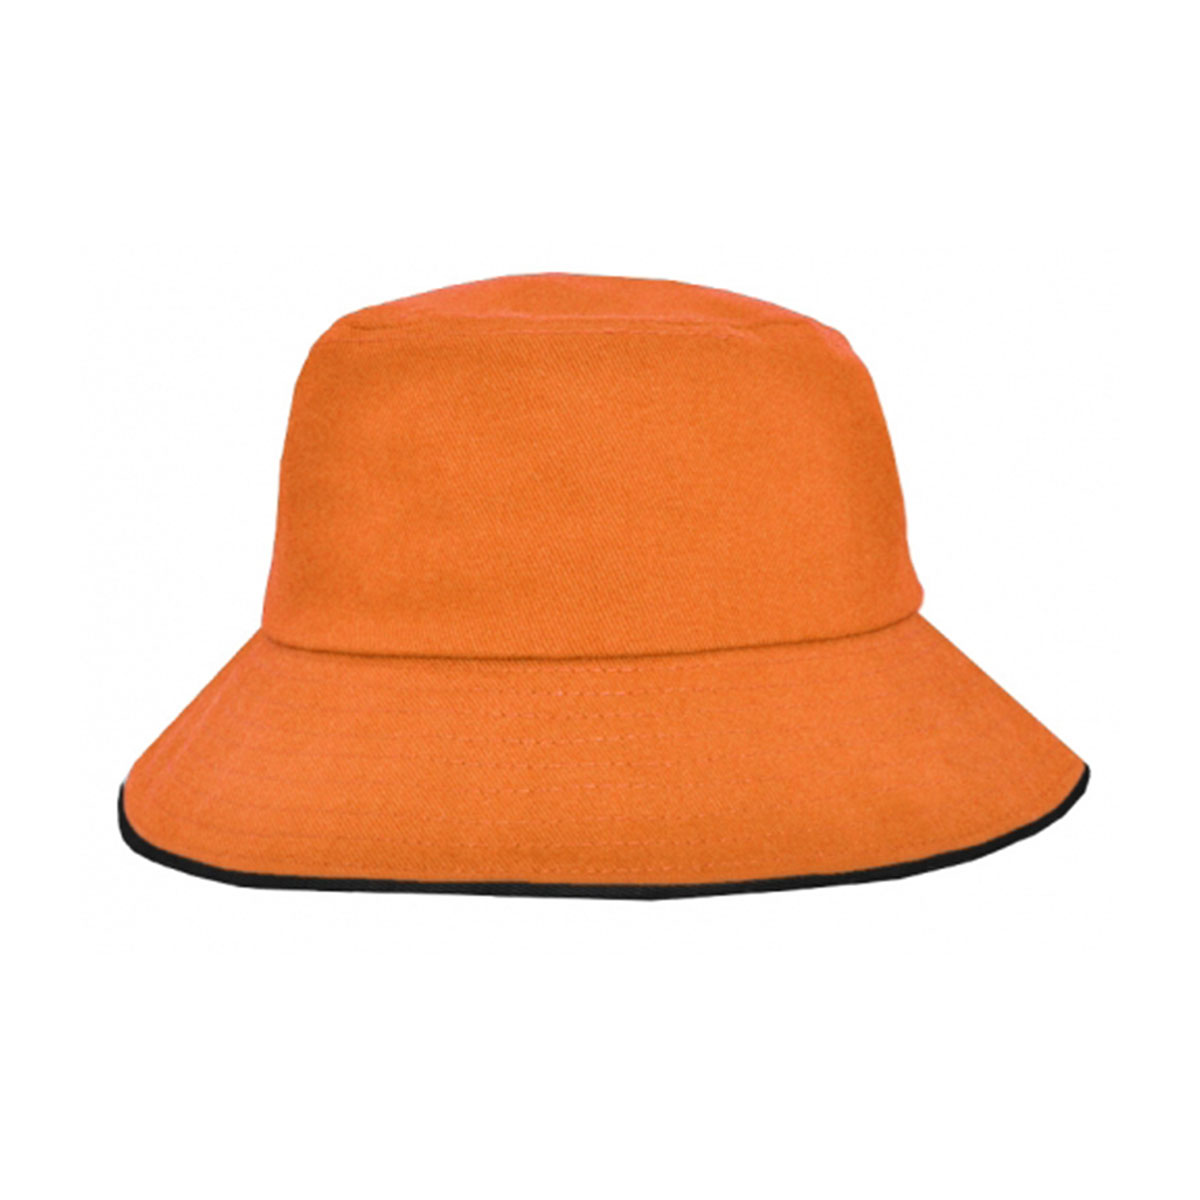 Bucket Hat Sandwich Design-Orange / Black